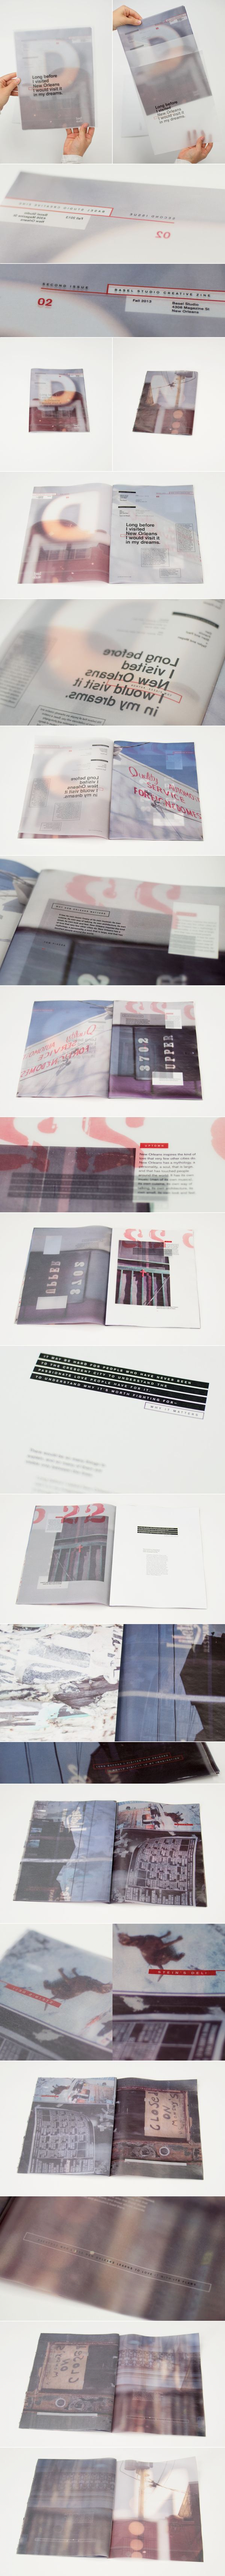 Basel Issue 02 by Liz Barnes, via Behance